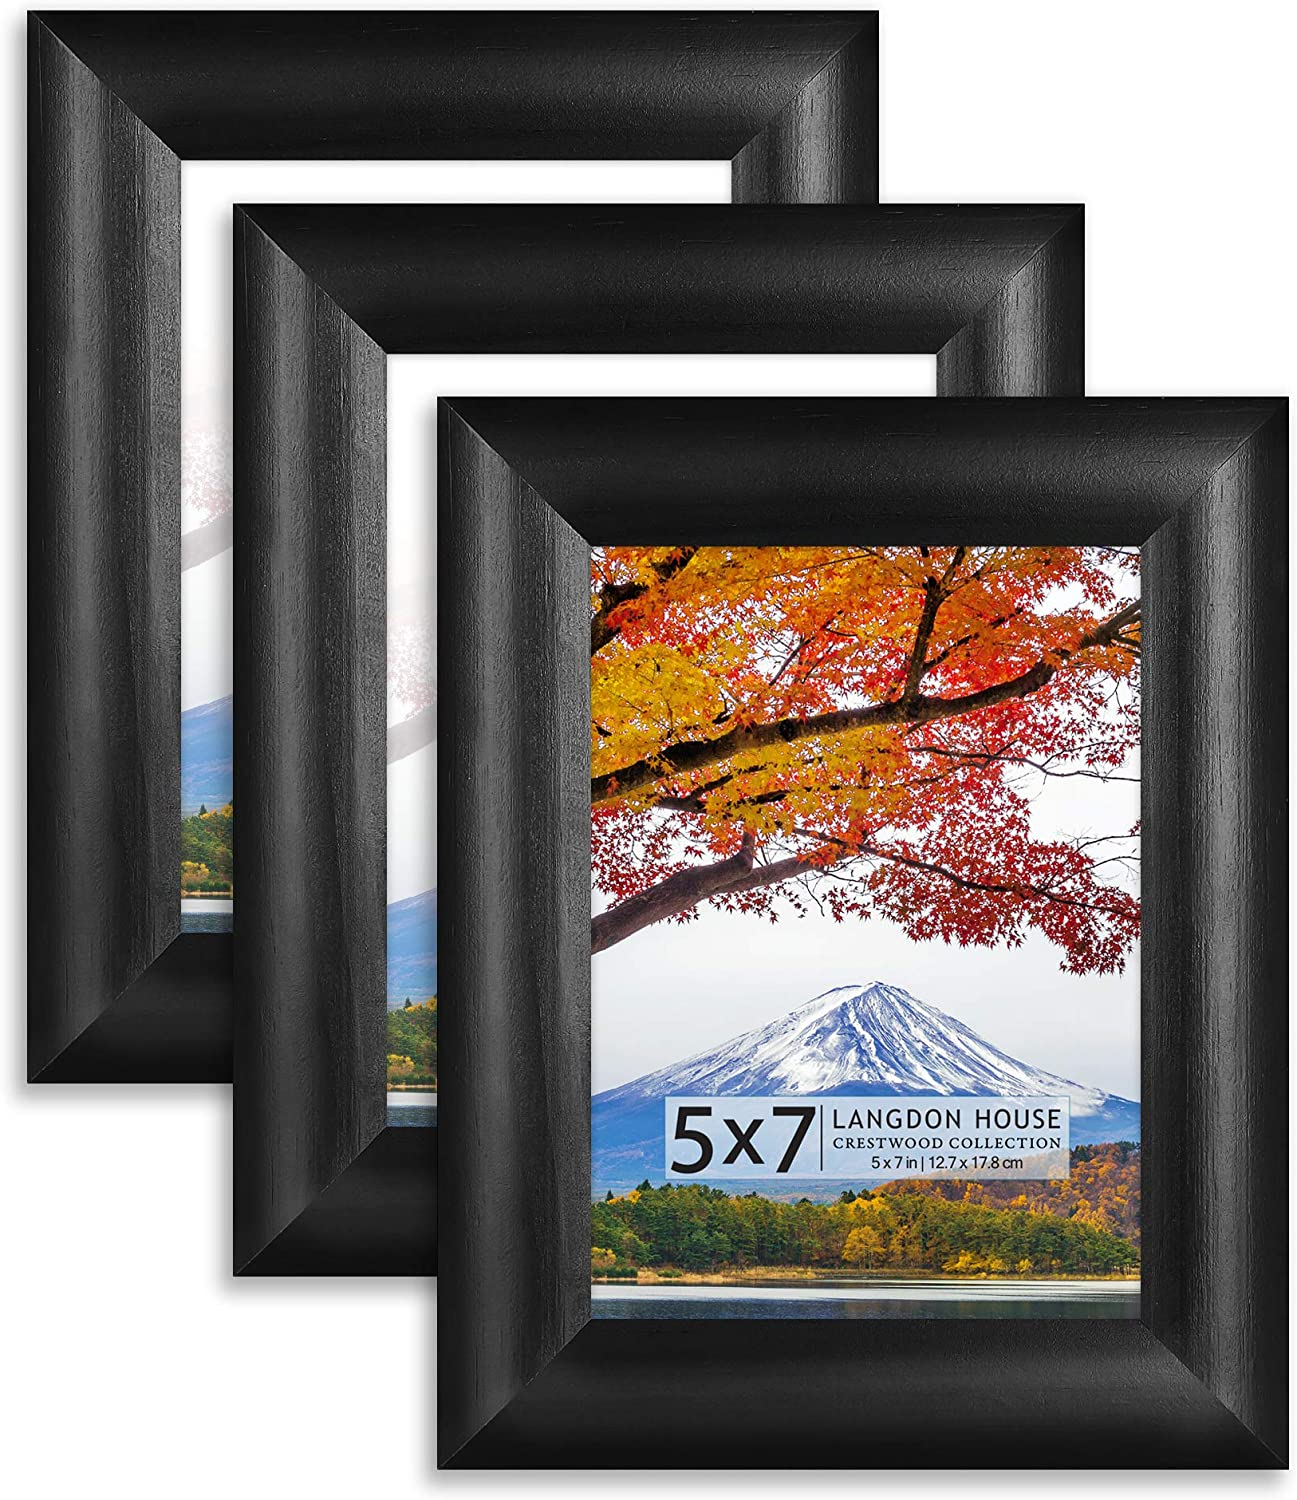 Langdon House 5x7 Picture Frames (Black, 3 Pack), Solid Wood 5 x 7 Traditional Photo Frames with Wall Mount Hooks and Table Top Easel, Crestwood Collection